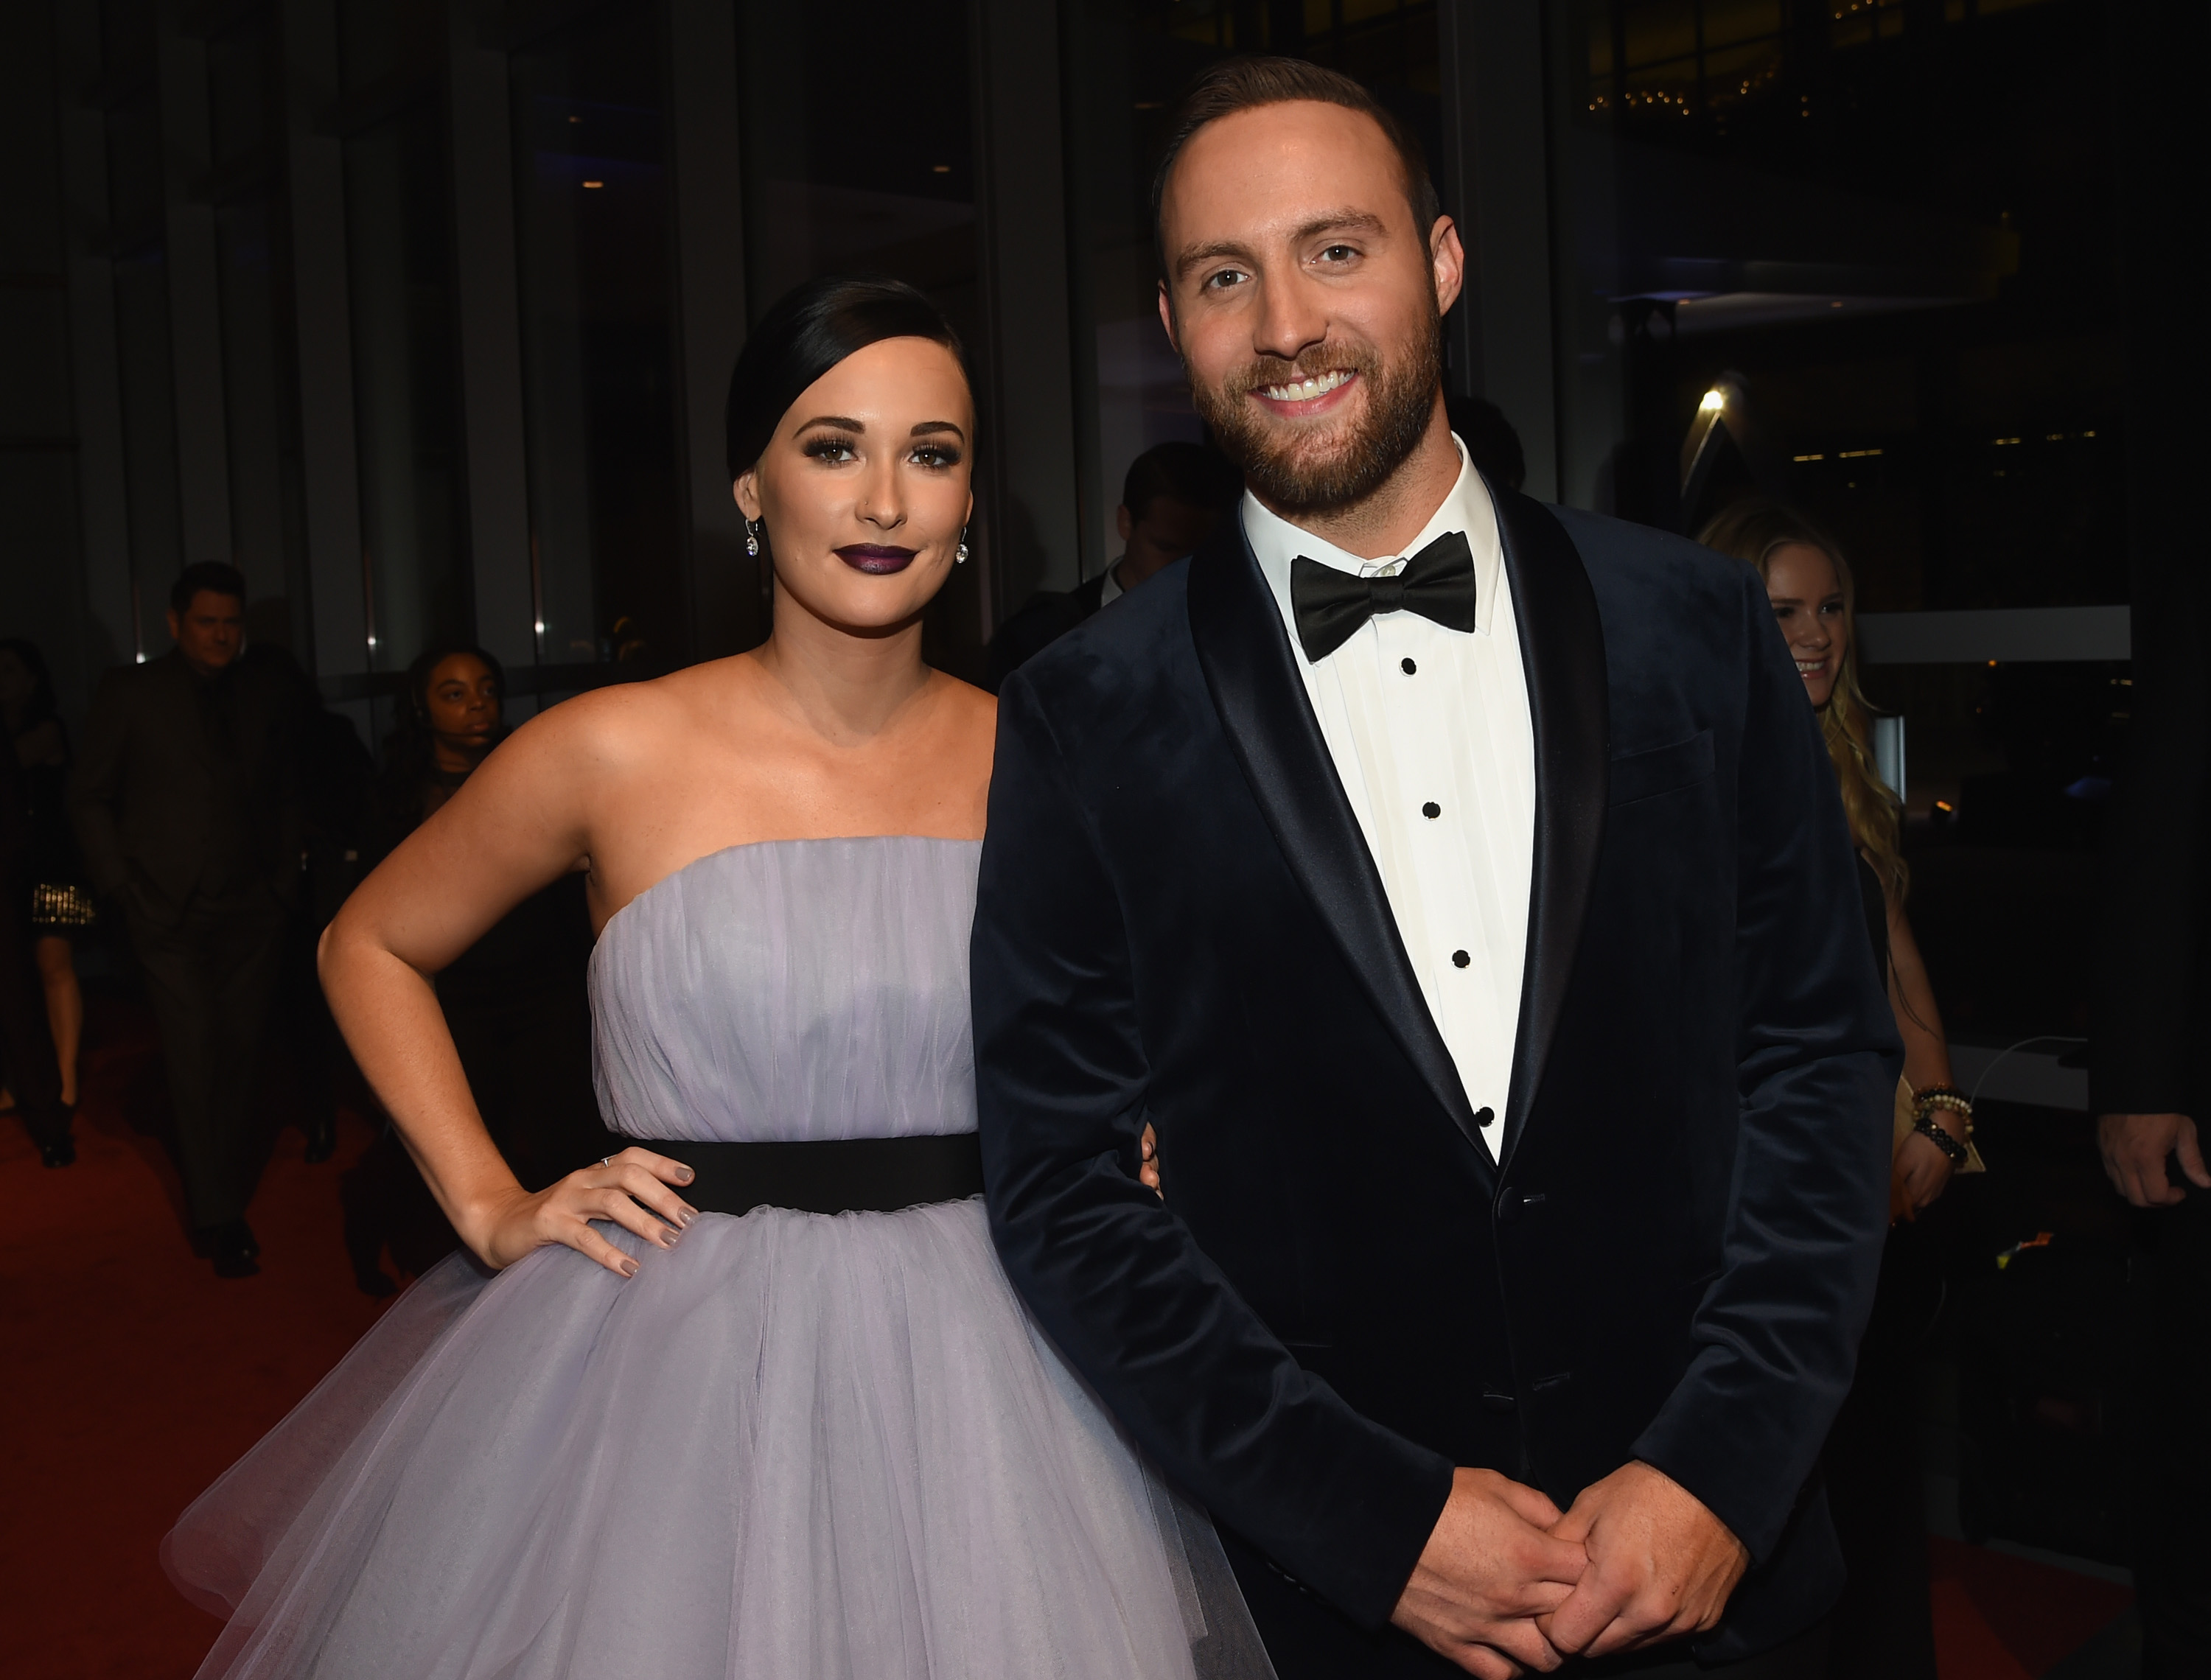 How Kacey Musgraves' Husband Changed Her Outlook on Love